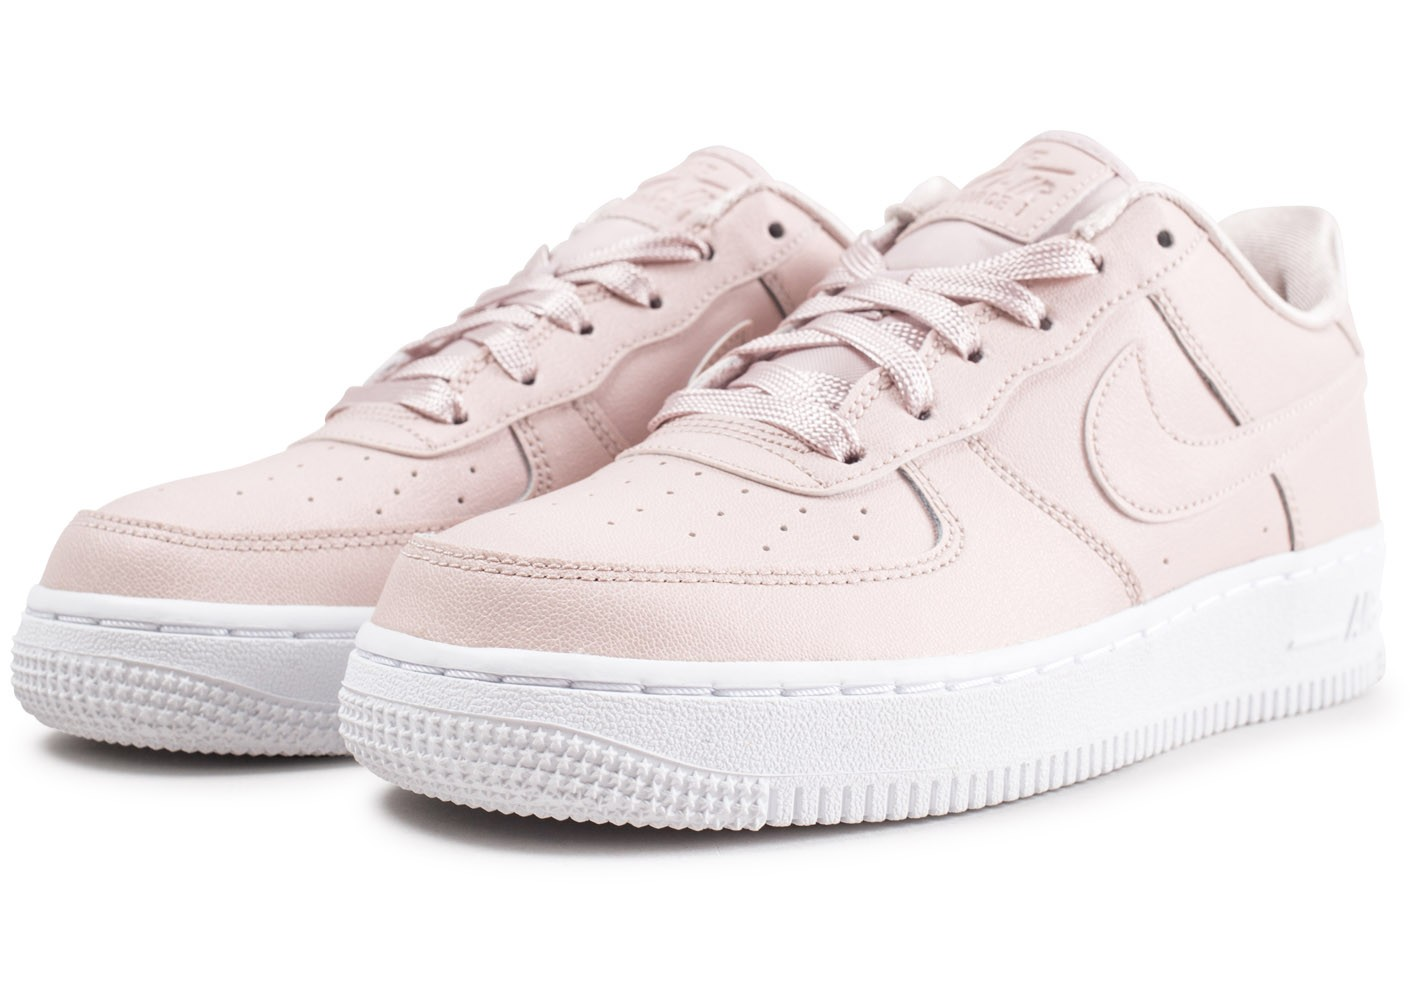 https://www.letilor.com/wp-content/uploads/2021/03/14839-chaussures-nike-air-force-1-ss-rose-clair-junior-vue-avant.jpeg